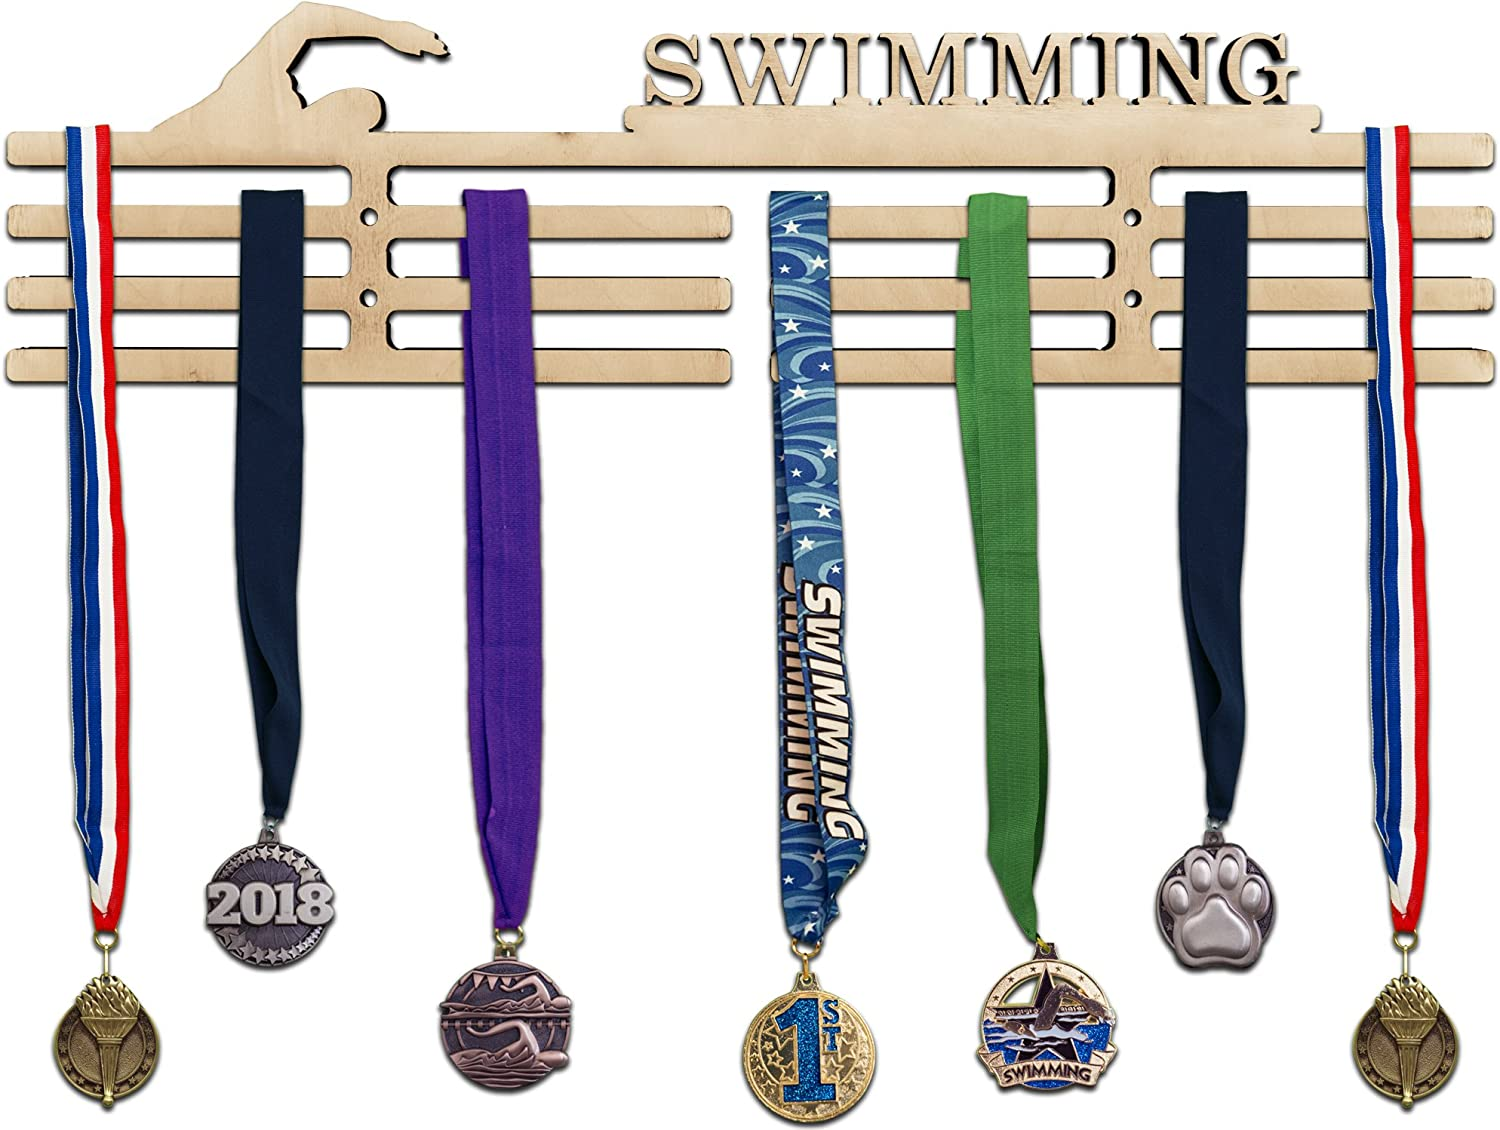 Sturdy Wall Mount Arena Gifts Soccer Medal Hanger Display Wooden Soccer Awards Holder Sports Rack Easy to Install Displays Up to 24 Hanging Medals or Ribbons